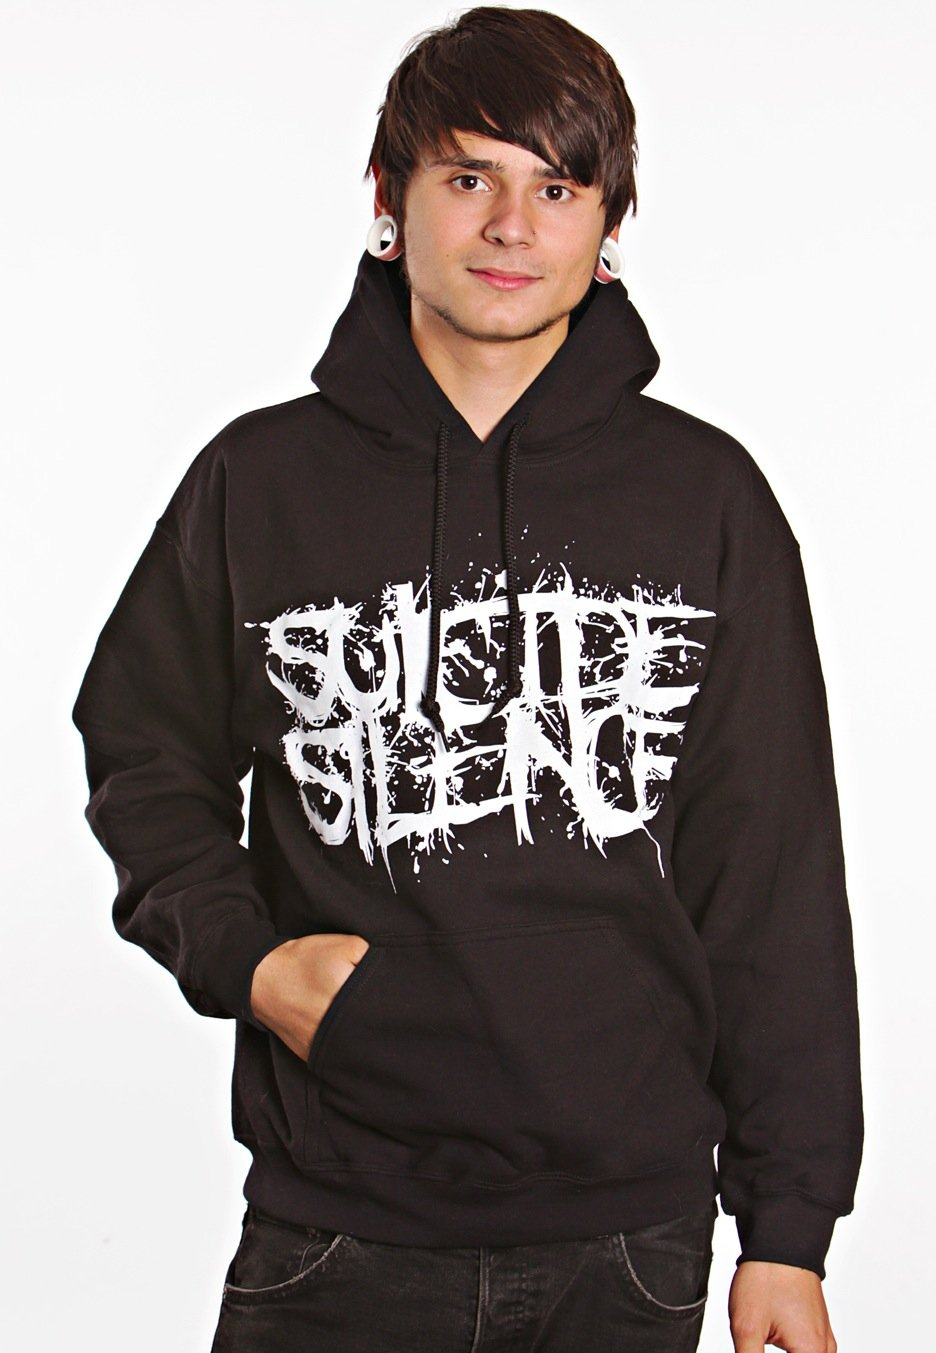 b9c487655 Suicide Silence - Pull The Trigger - Hoodie - Impericon.com US